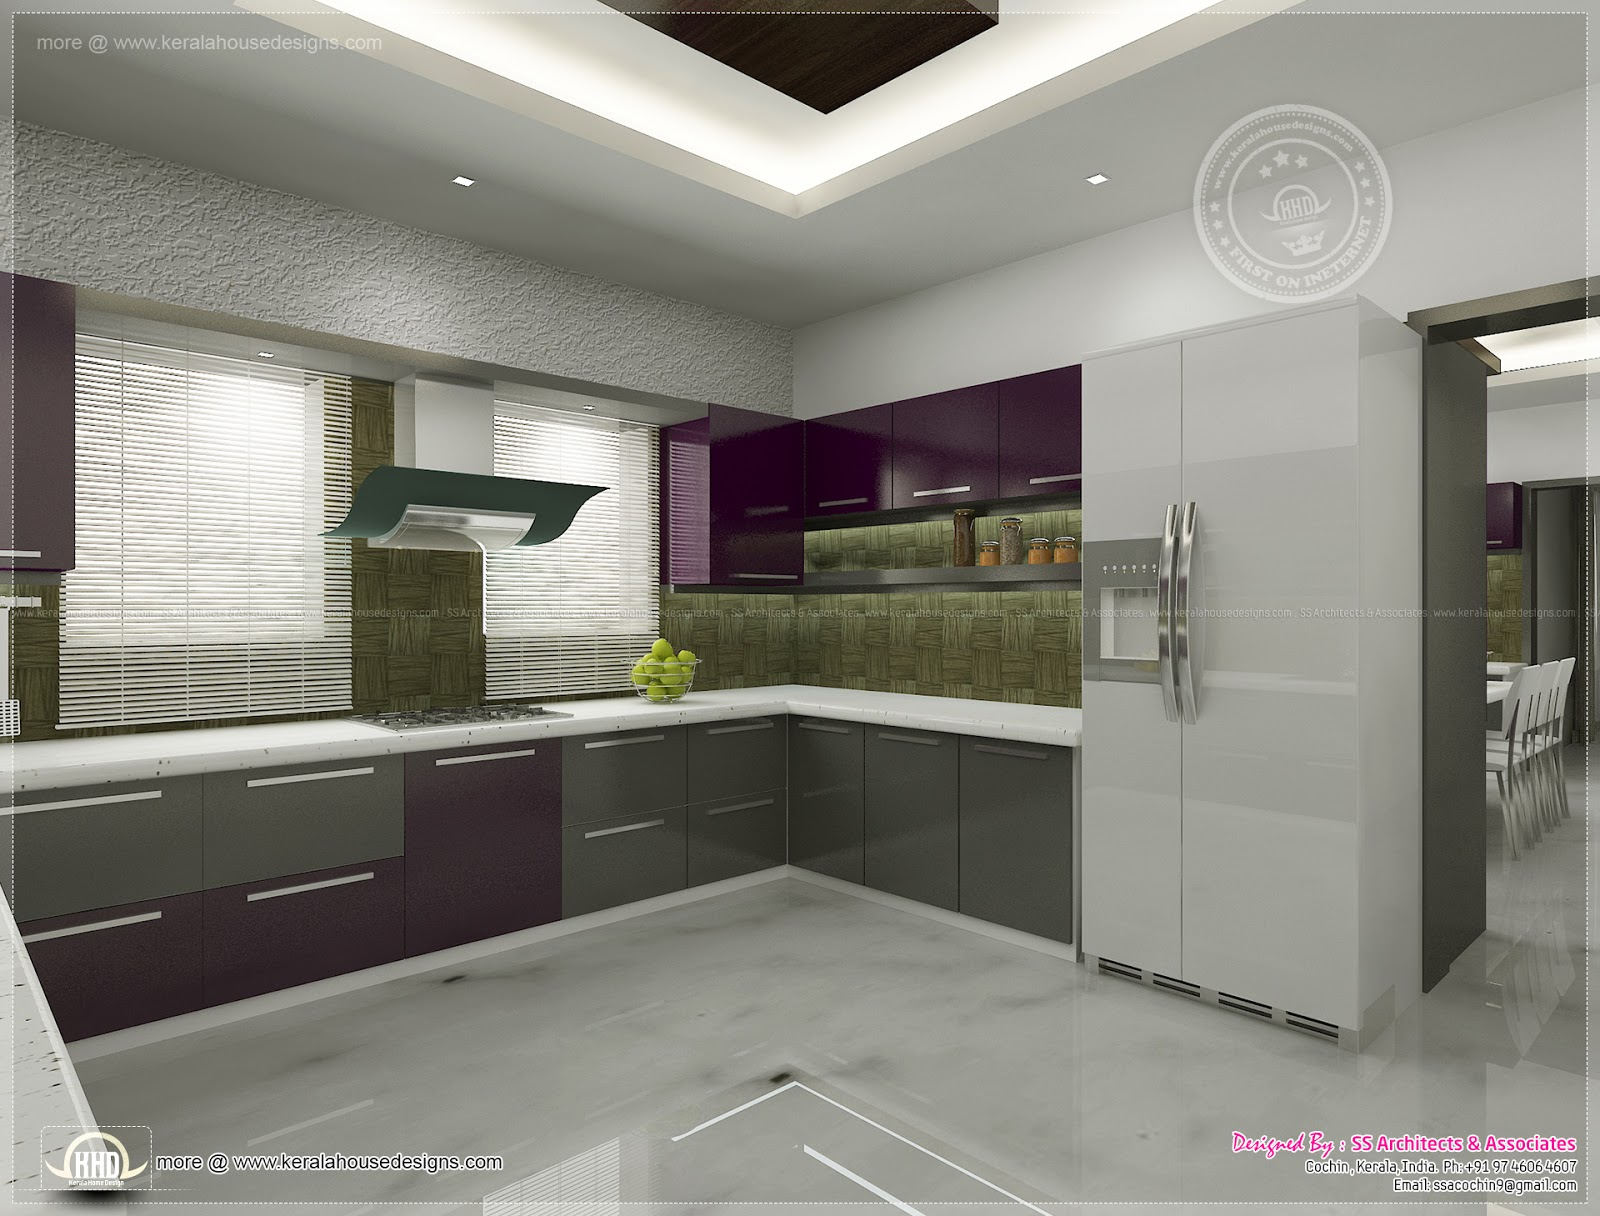 Kitchen interior views by ss architects cochin kerala for Kitchen interior designs